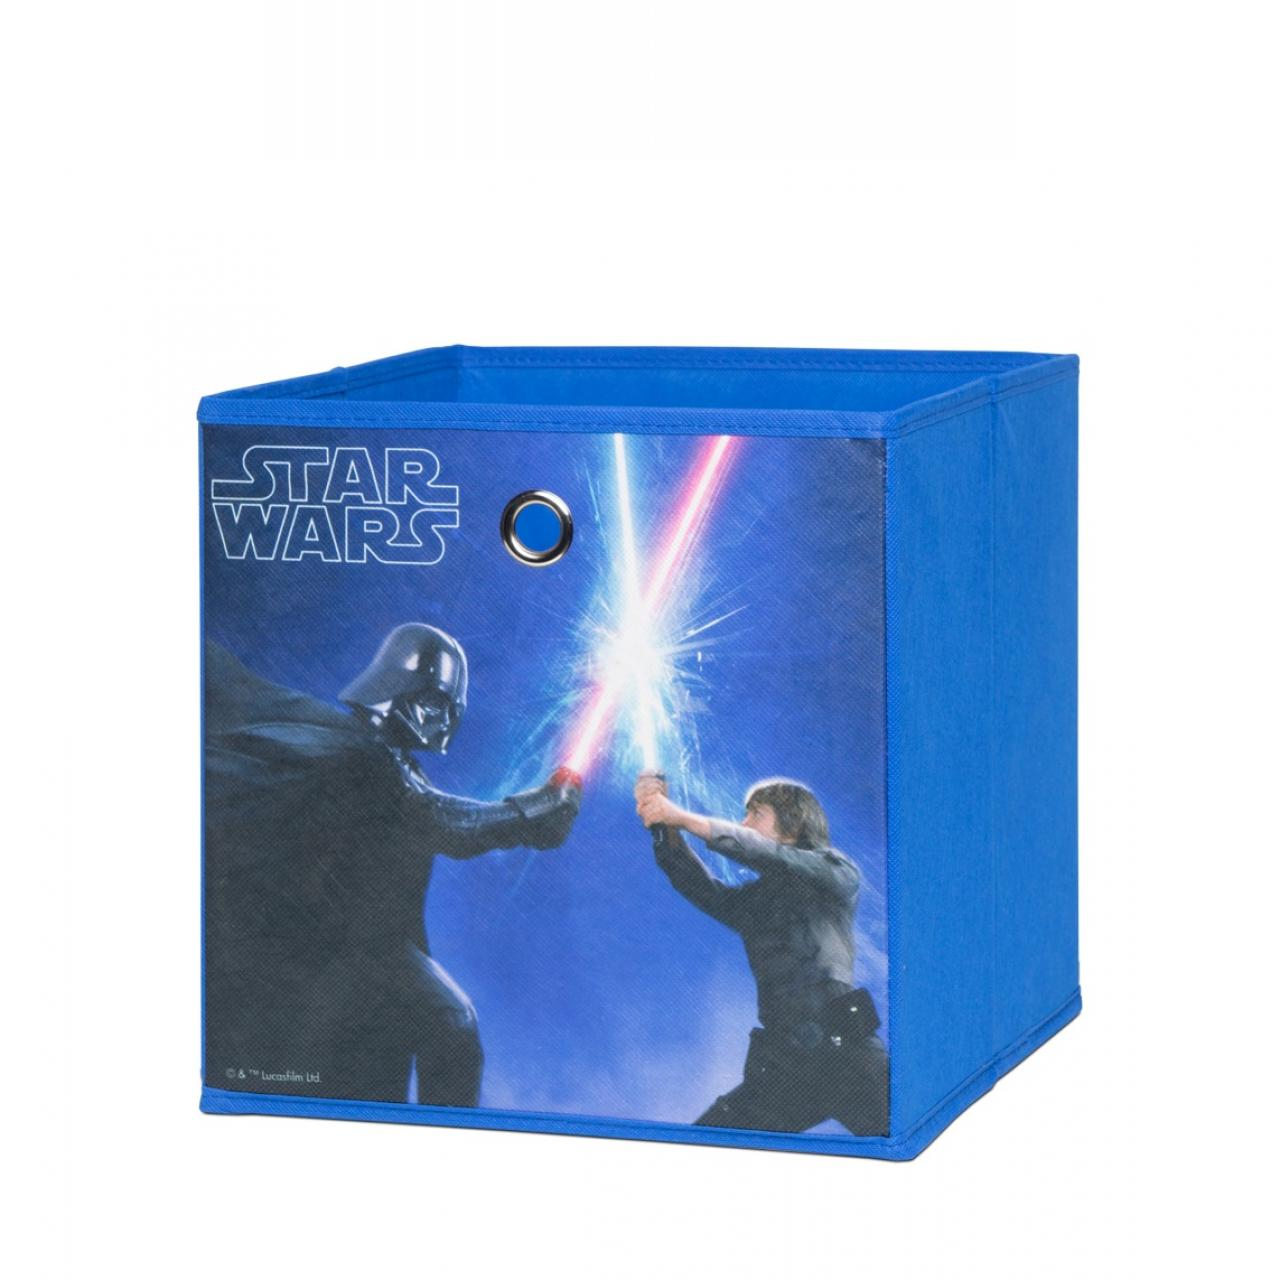 Faltbox Star Wars - Motiv G - blau